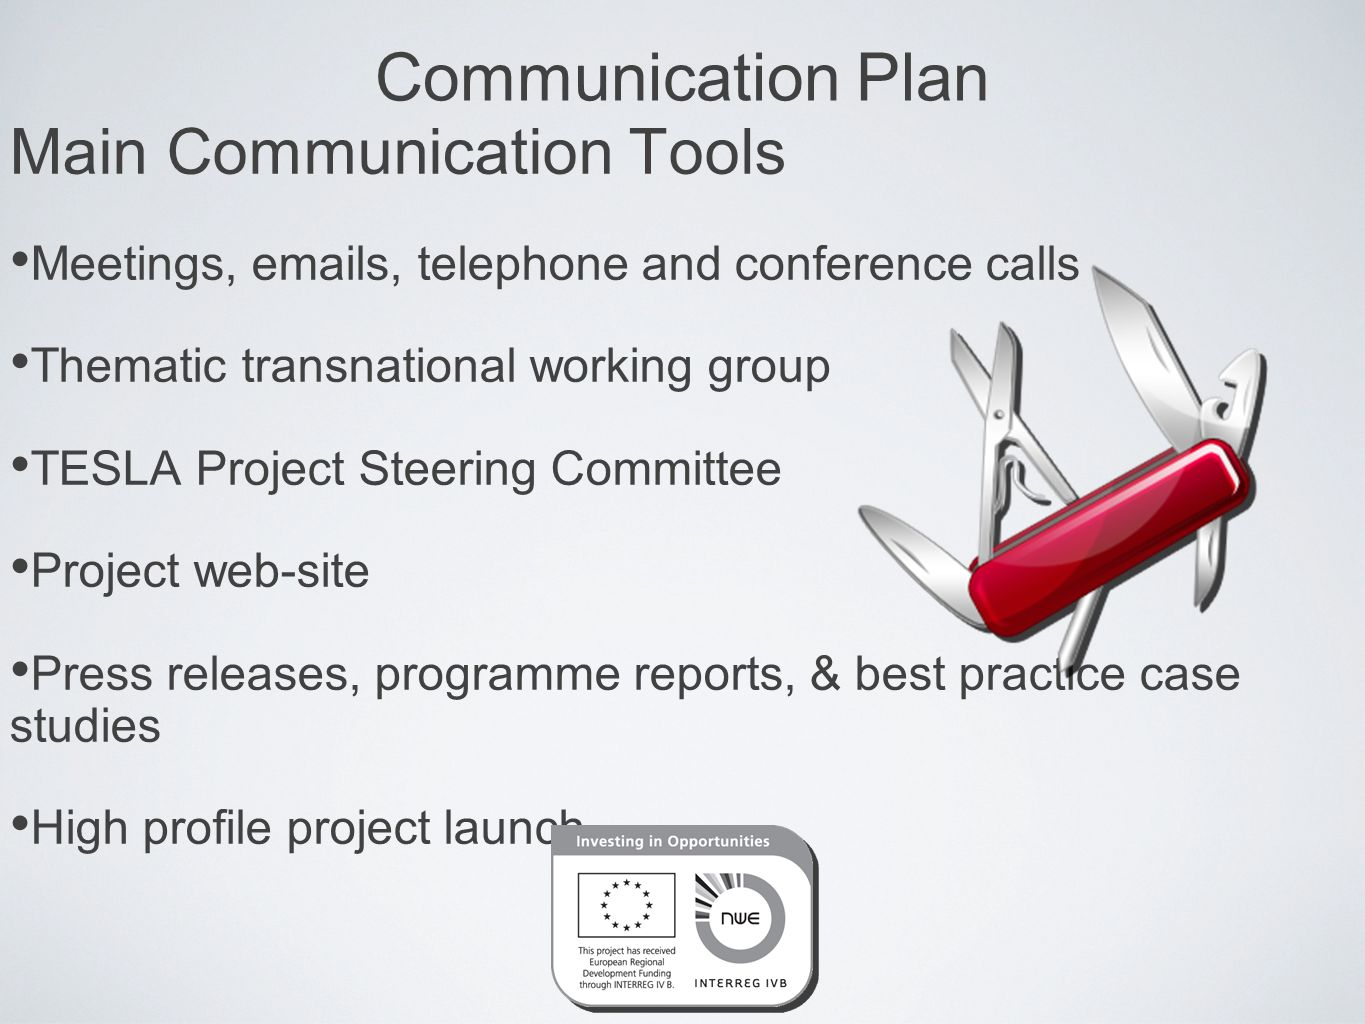 Communication Plan Main Communication Tools Meetings,  s, telephone and conference calls Thematic transnational working group TESLA Project Steering Committee Project web-site Press releases, programme reports, & best practice case studies High profile project launch